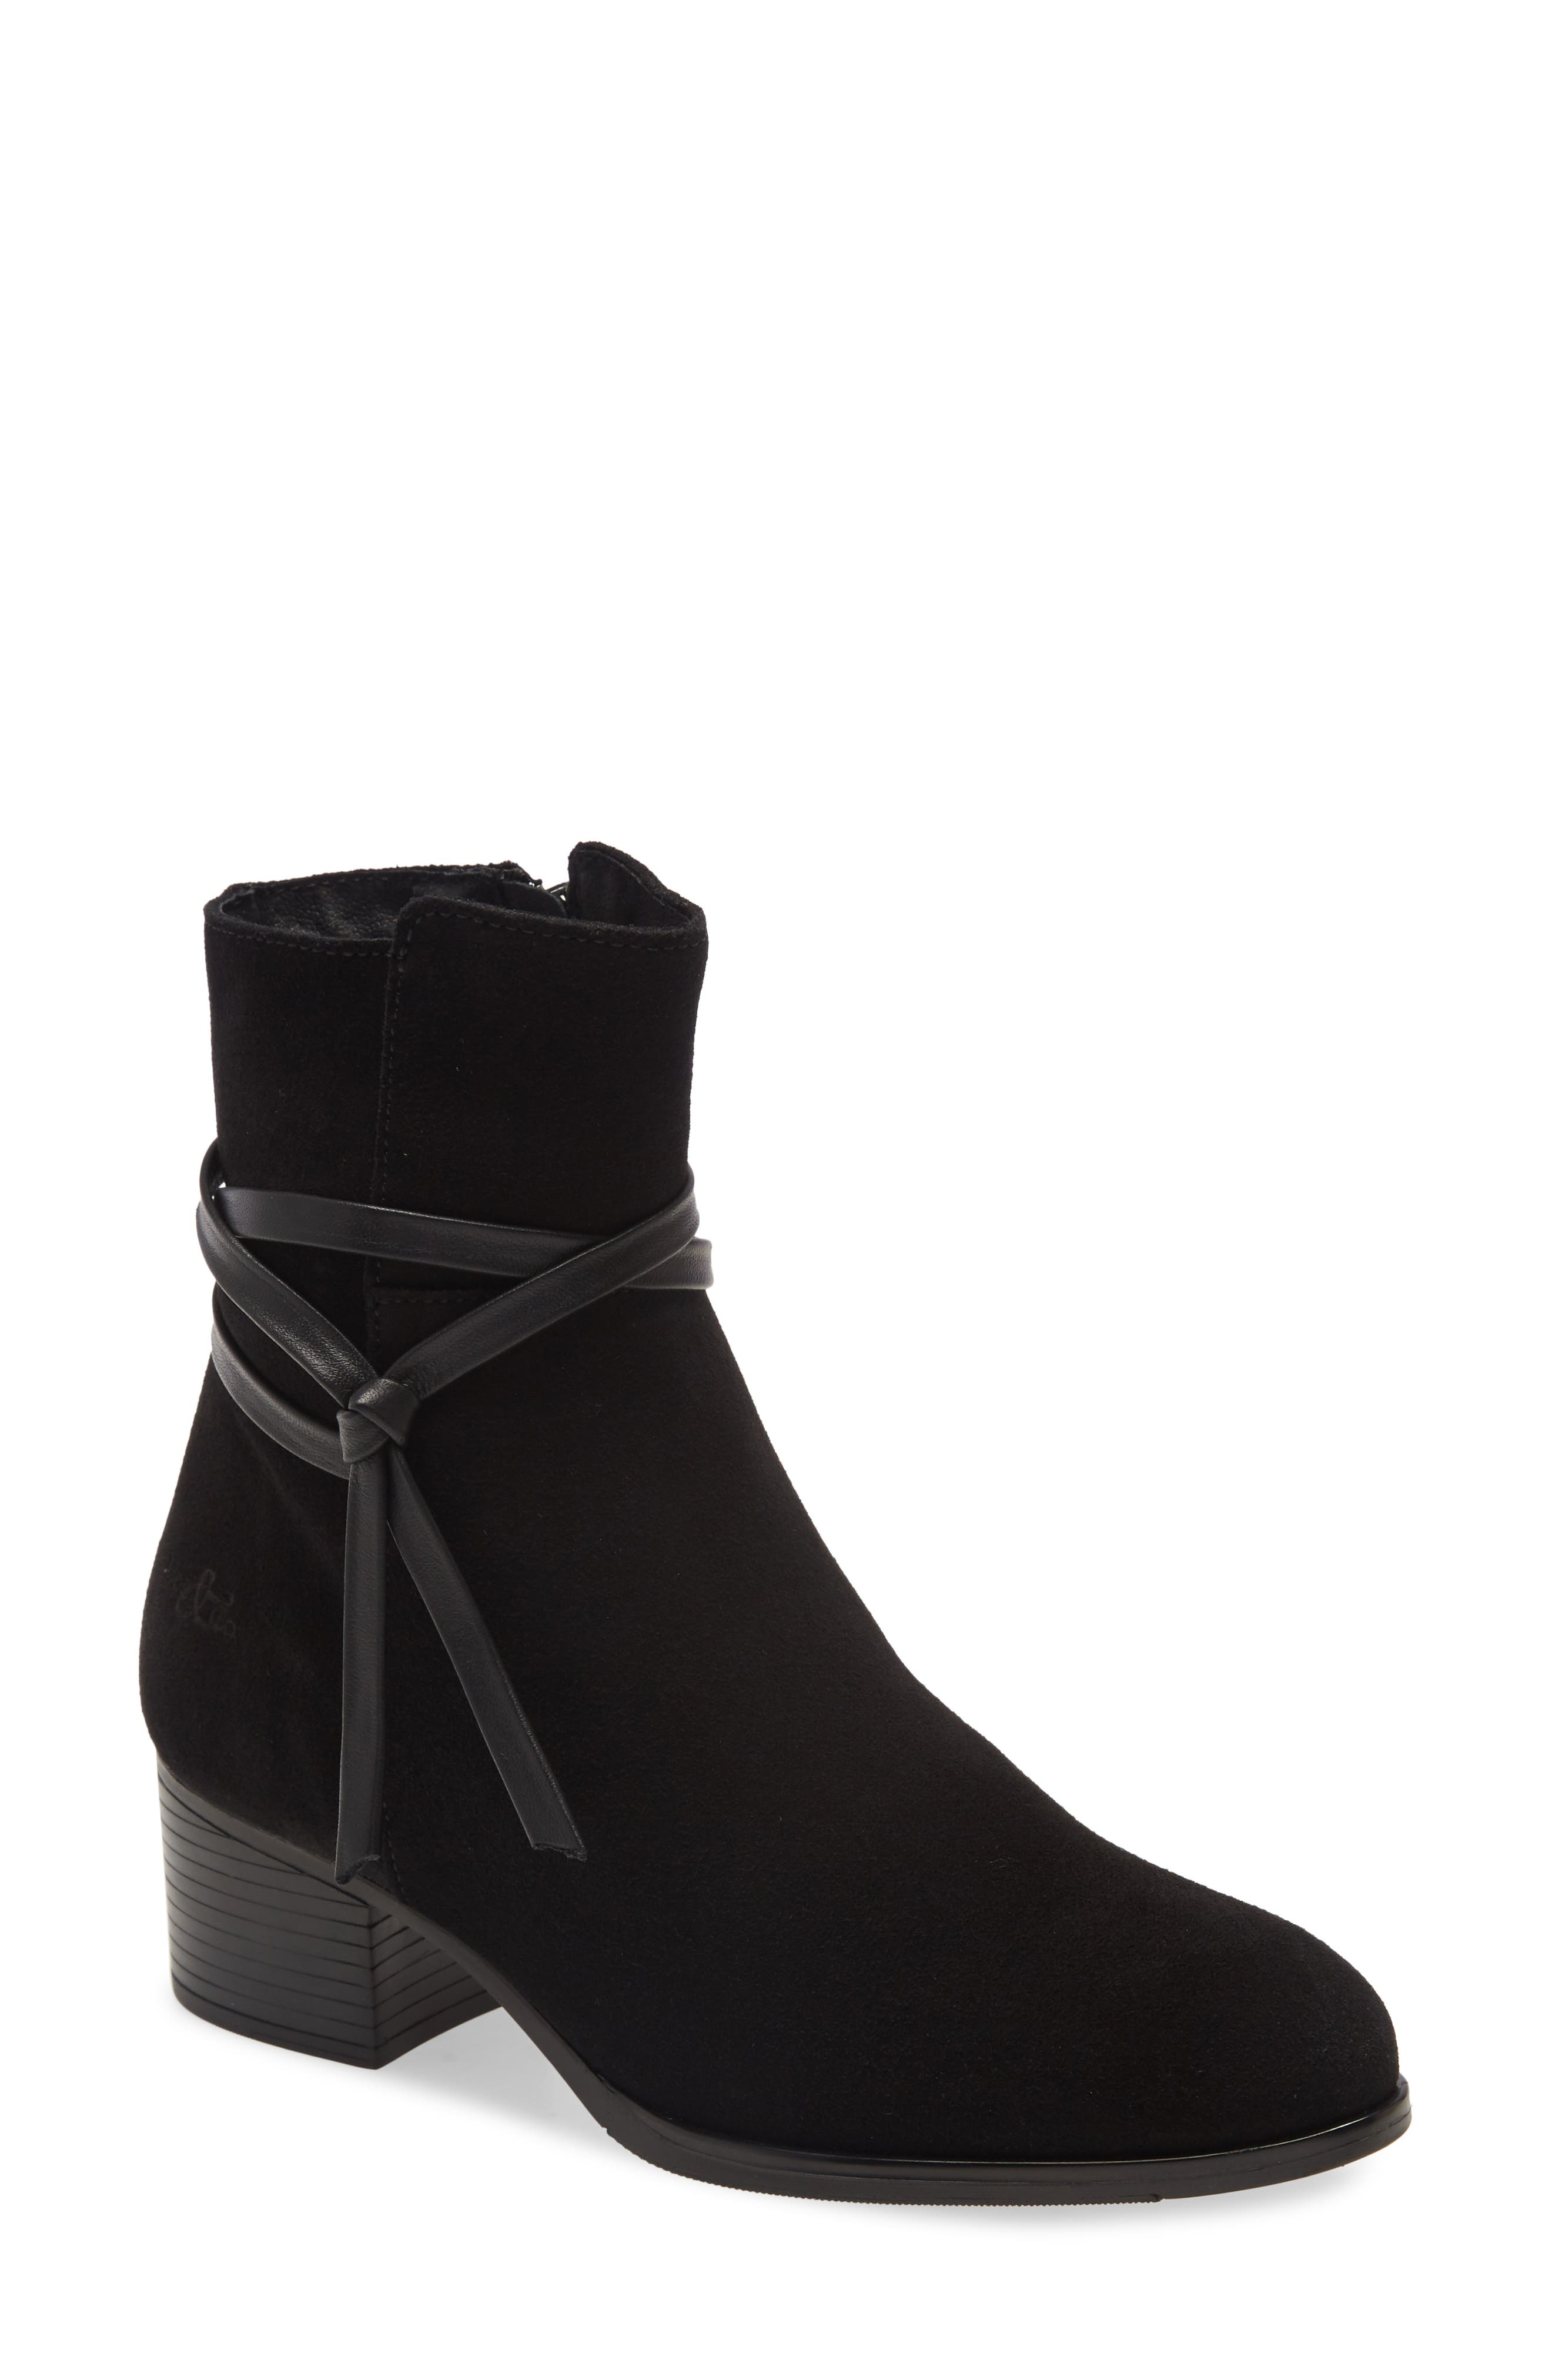 A slim wraparound strap provides a polished finish for a block-heel bootie that\\\'s a fuss-free waterproof standby. Style Name: Bos. & Co. Reveal Waterproof Bootie (Women). Style Number: 6086163. Available in stores.